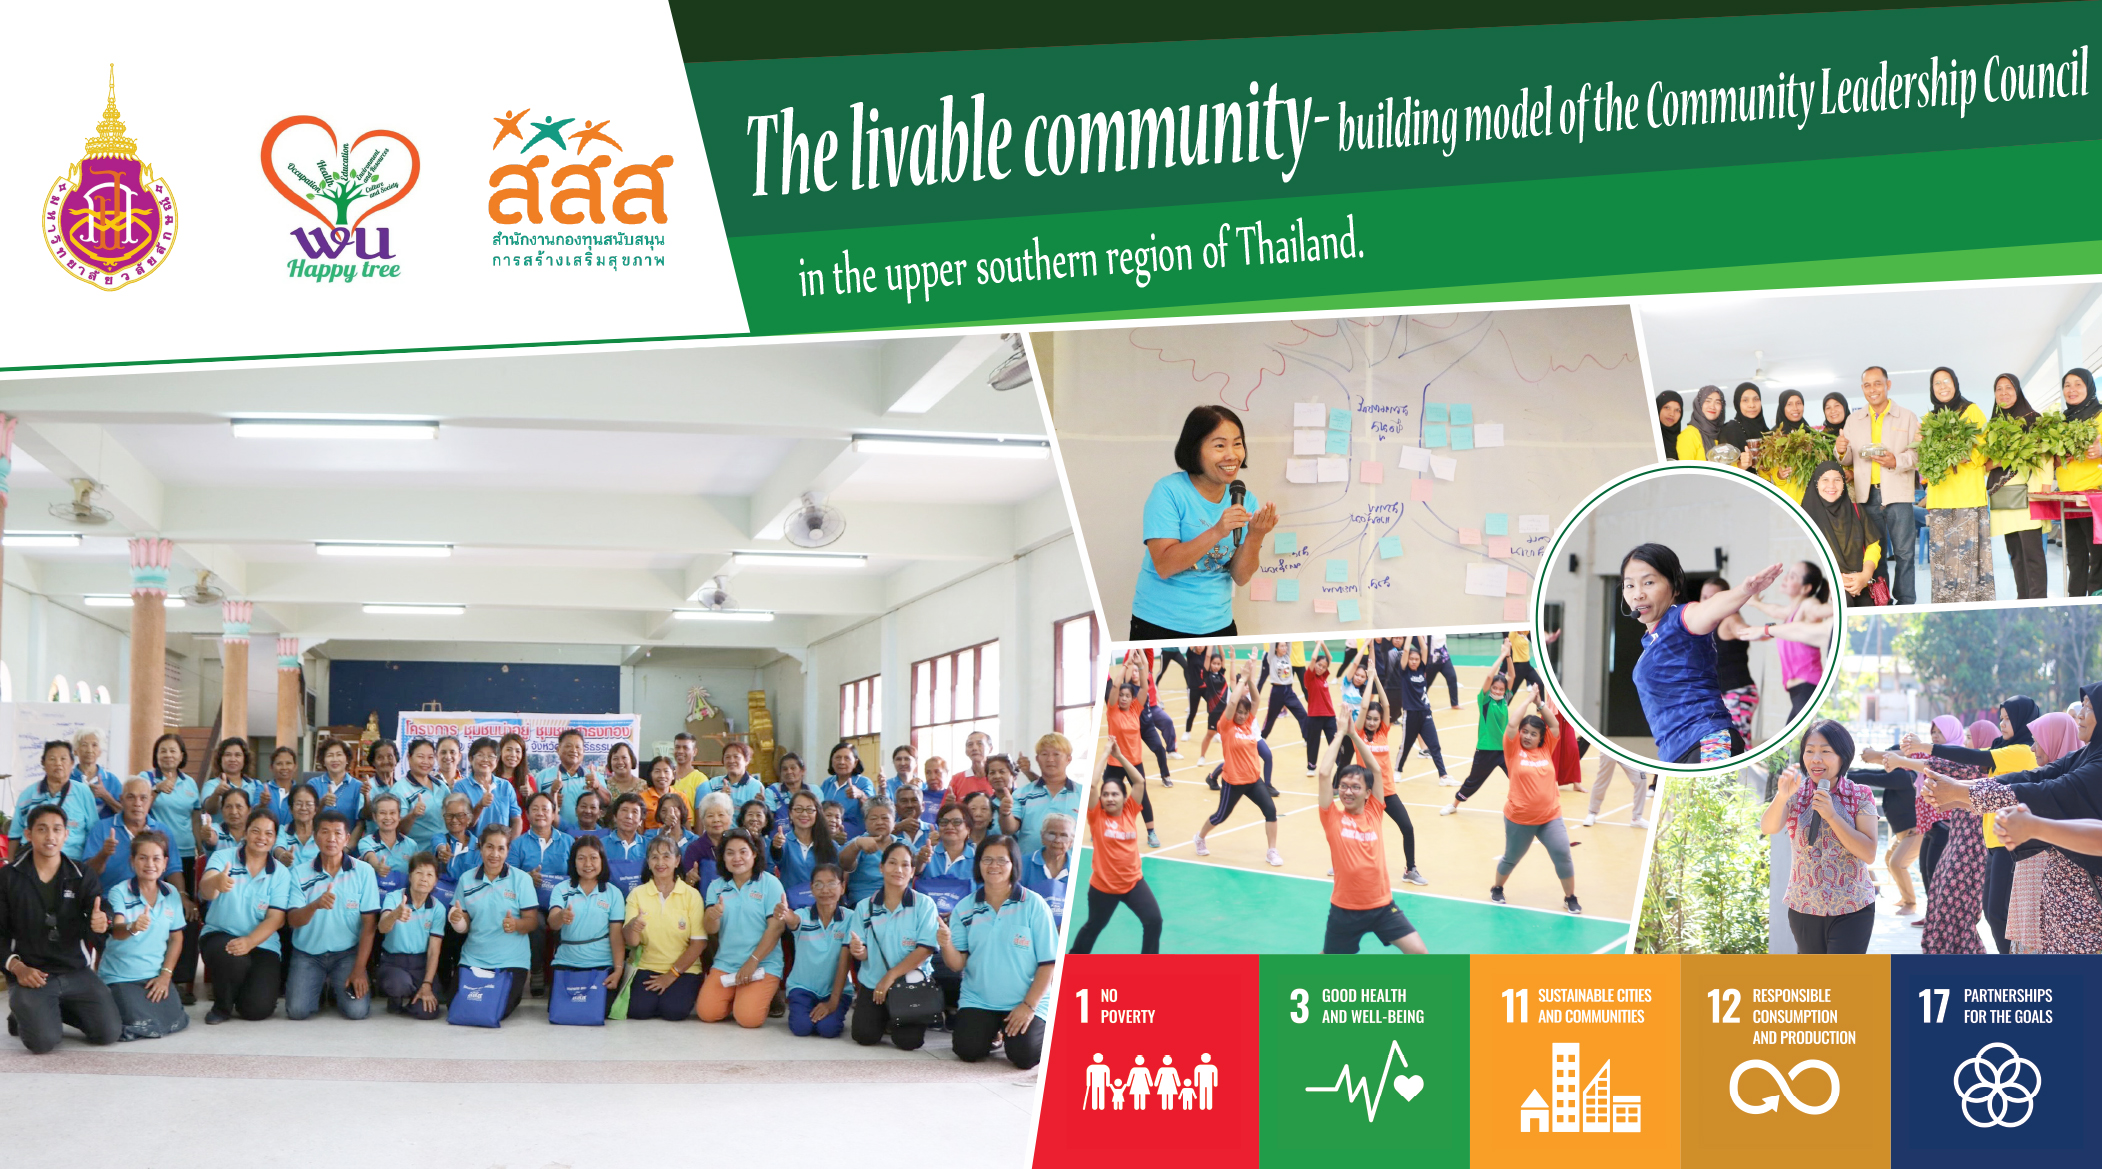 The livable community-building model of the Community Leadership Council in the upper southern region of Thailand.